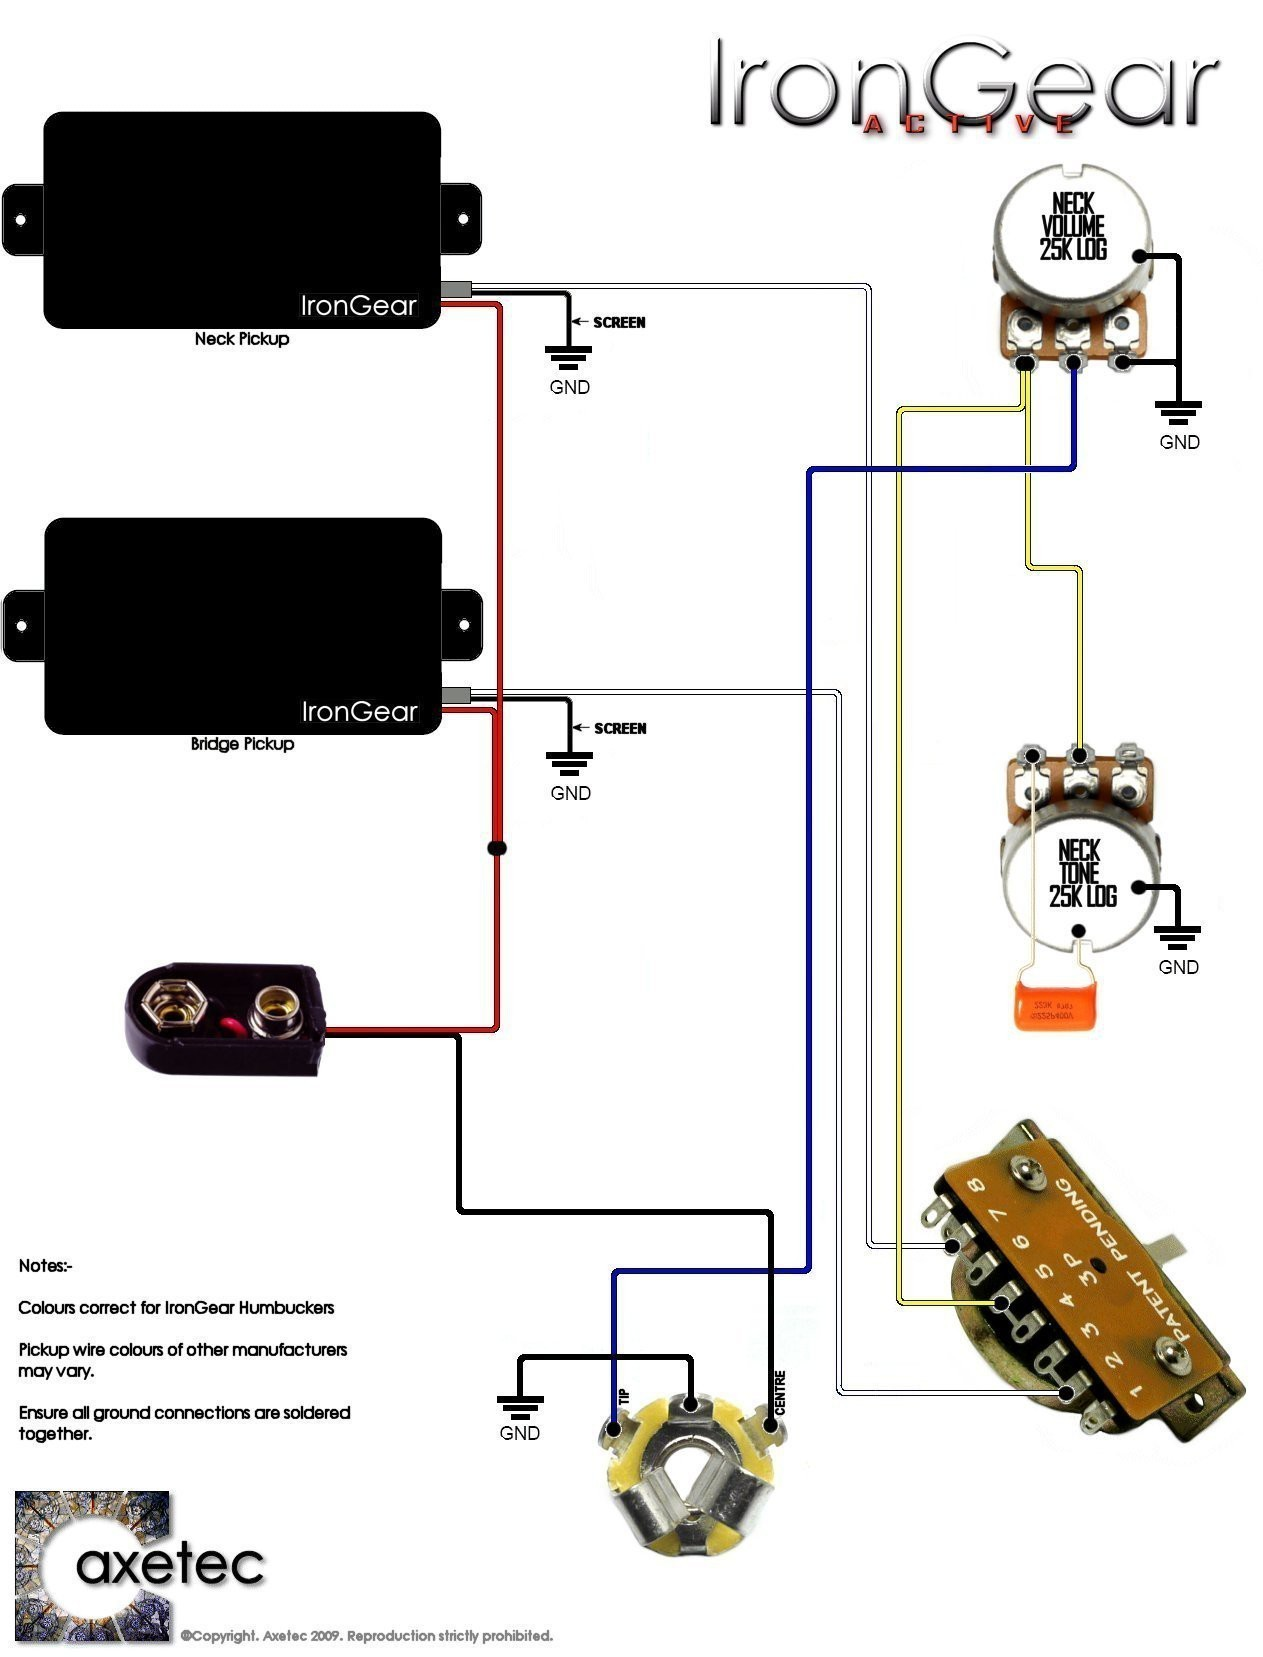 Active Guitar Wiring Diagram New Wiring Diagram Bass Pickups Best Active Jazz Bass Wiring Diagram New